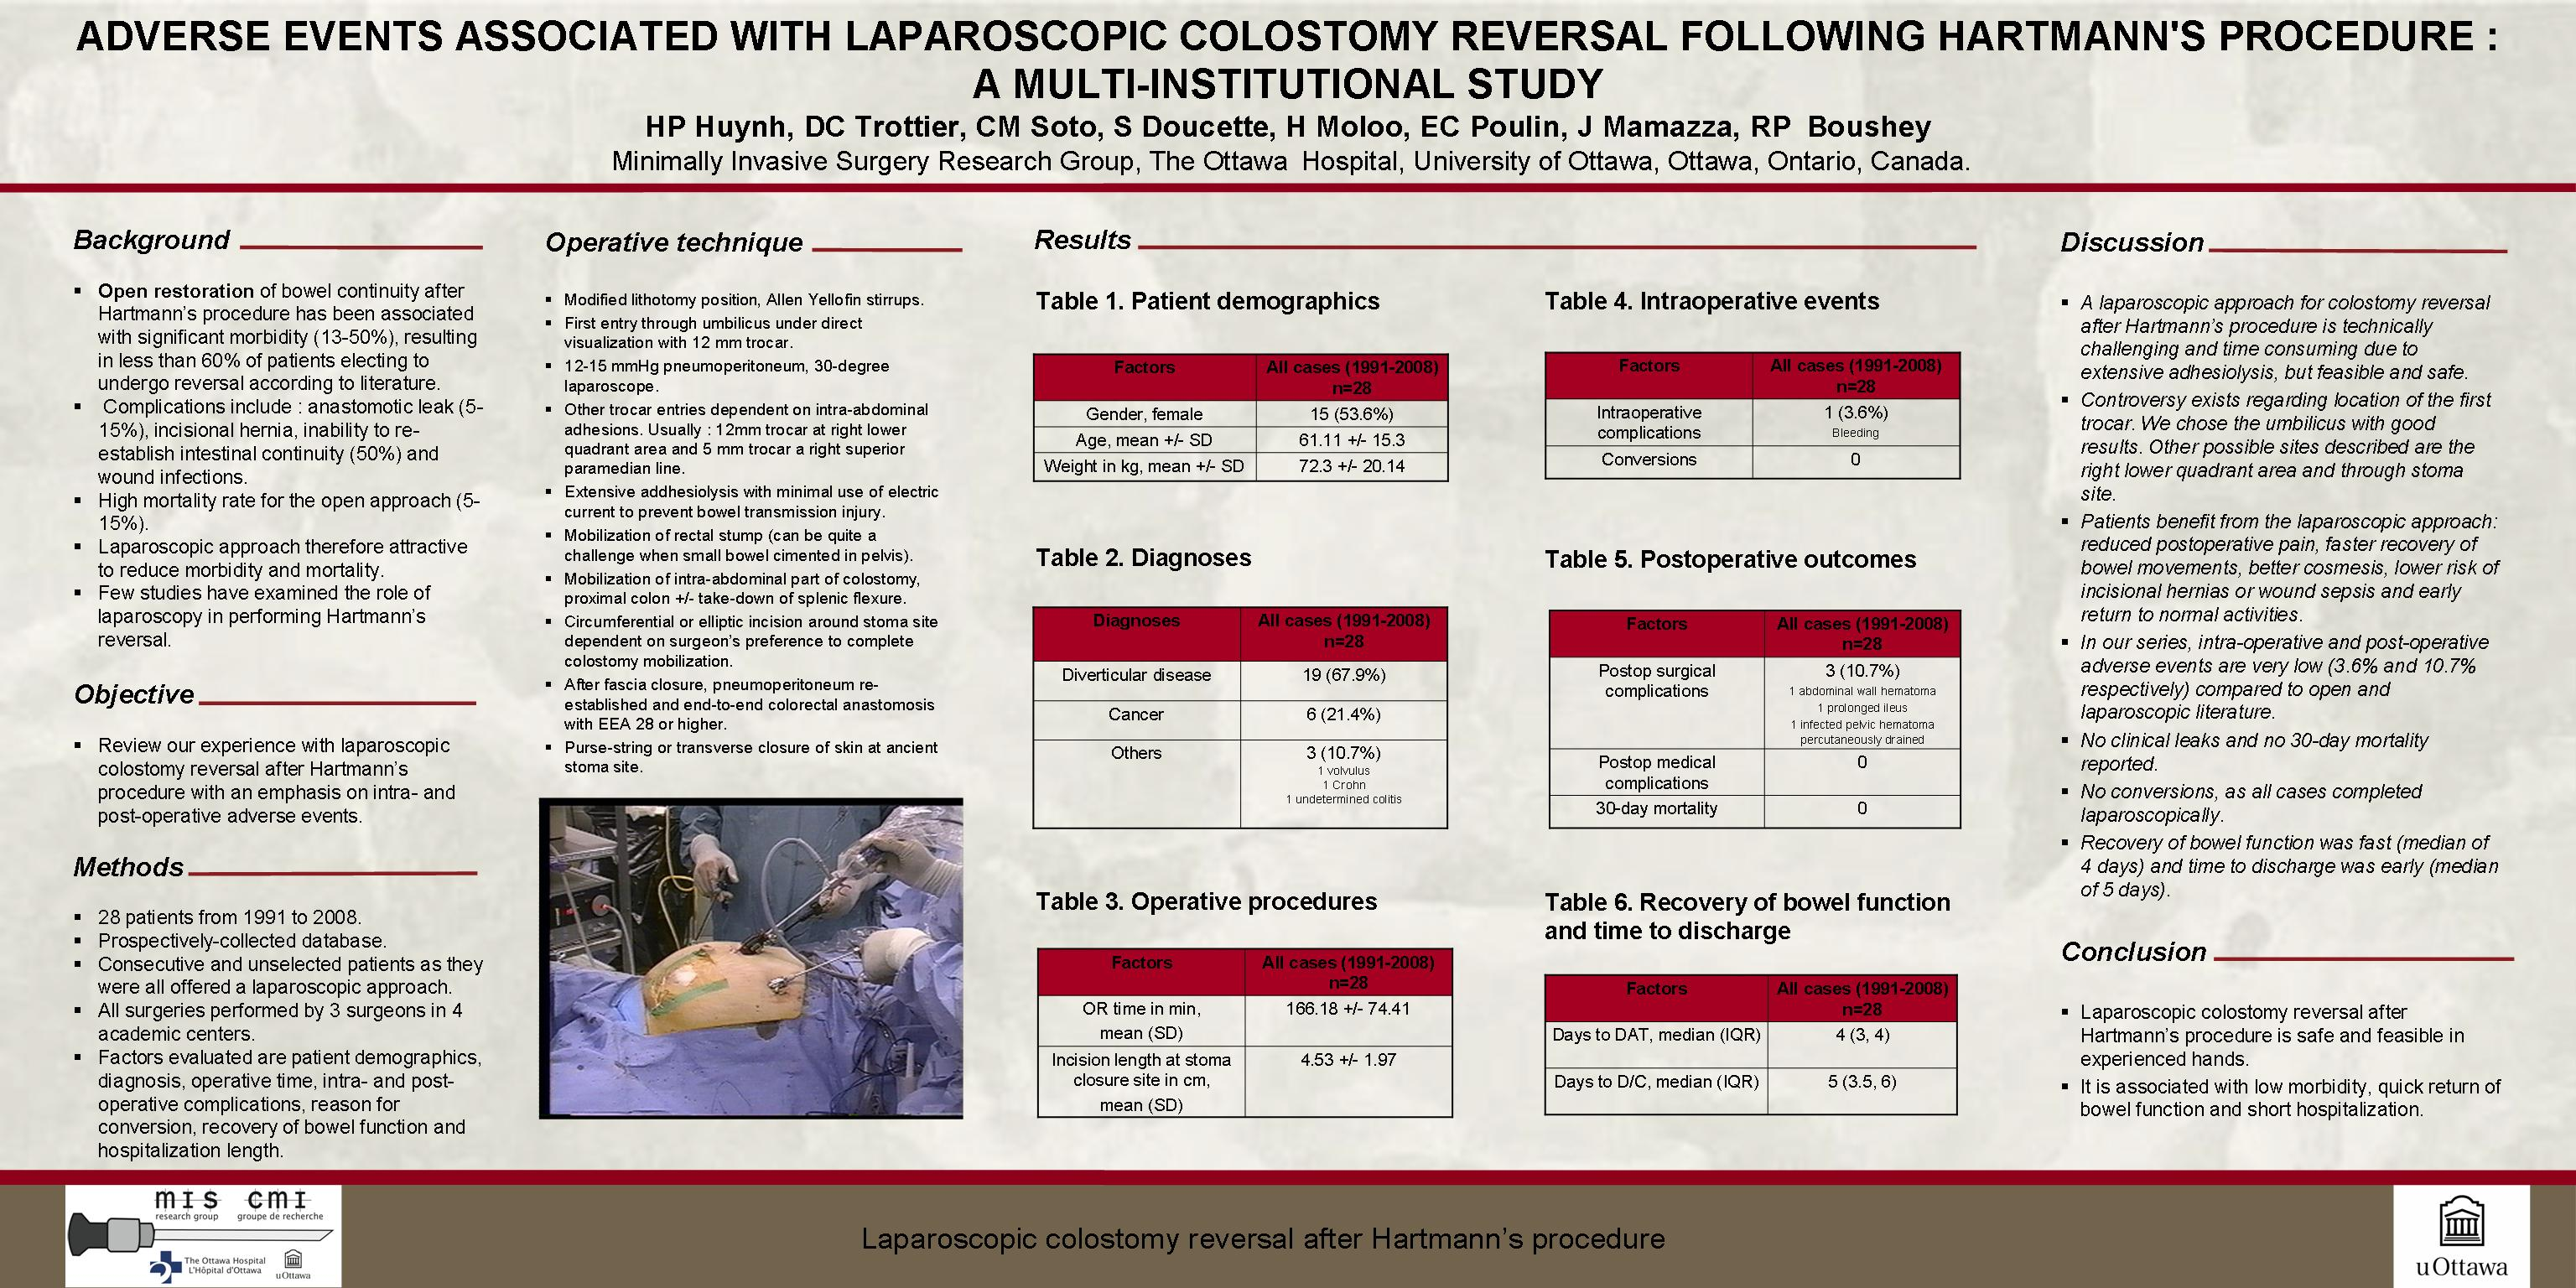 Adverse Events Associated With Laparoscopic Colostomy Reversal